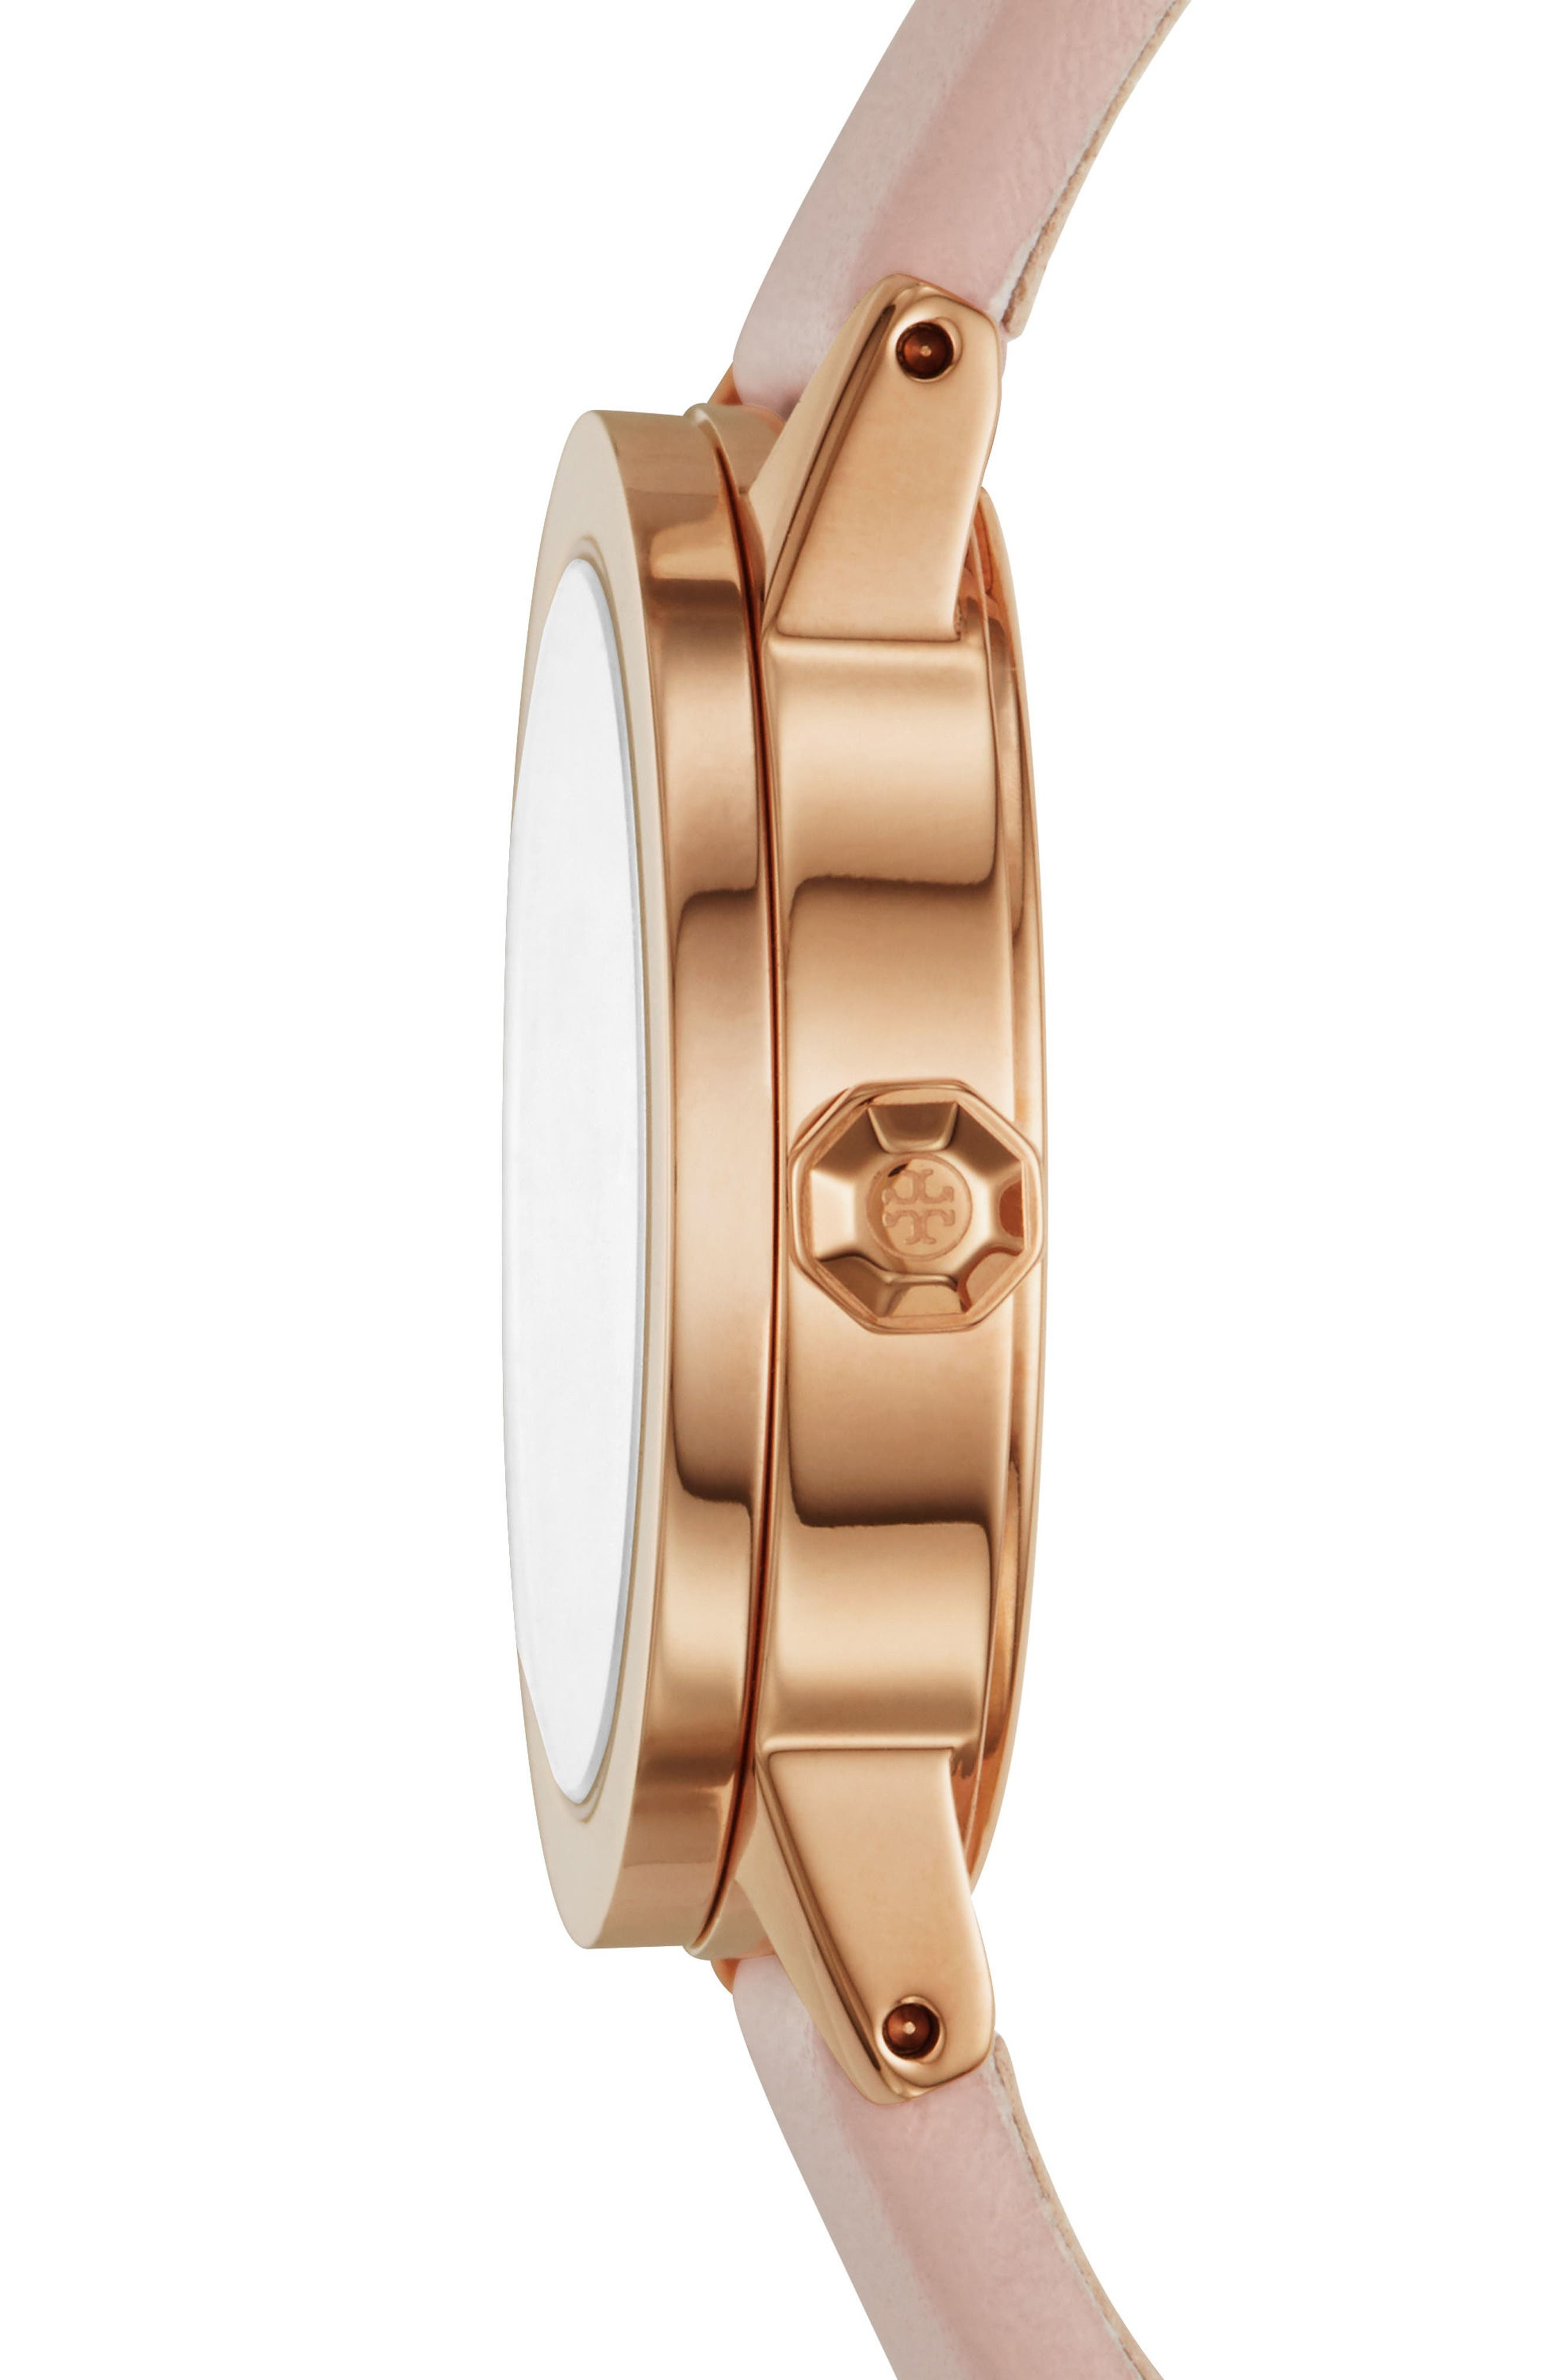 TORY BURCH, Gigi Leather Strap Watch, 28mm, Alternate thumbnail 2, color, PINK/ CREAM/ ROSE GOLD